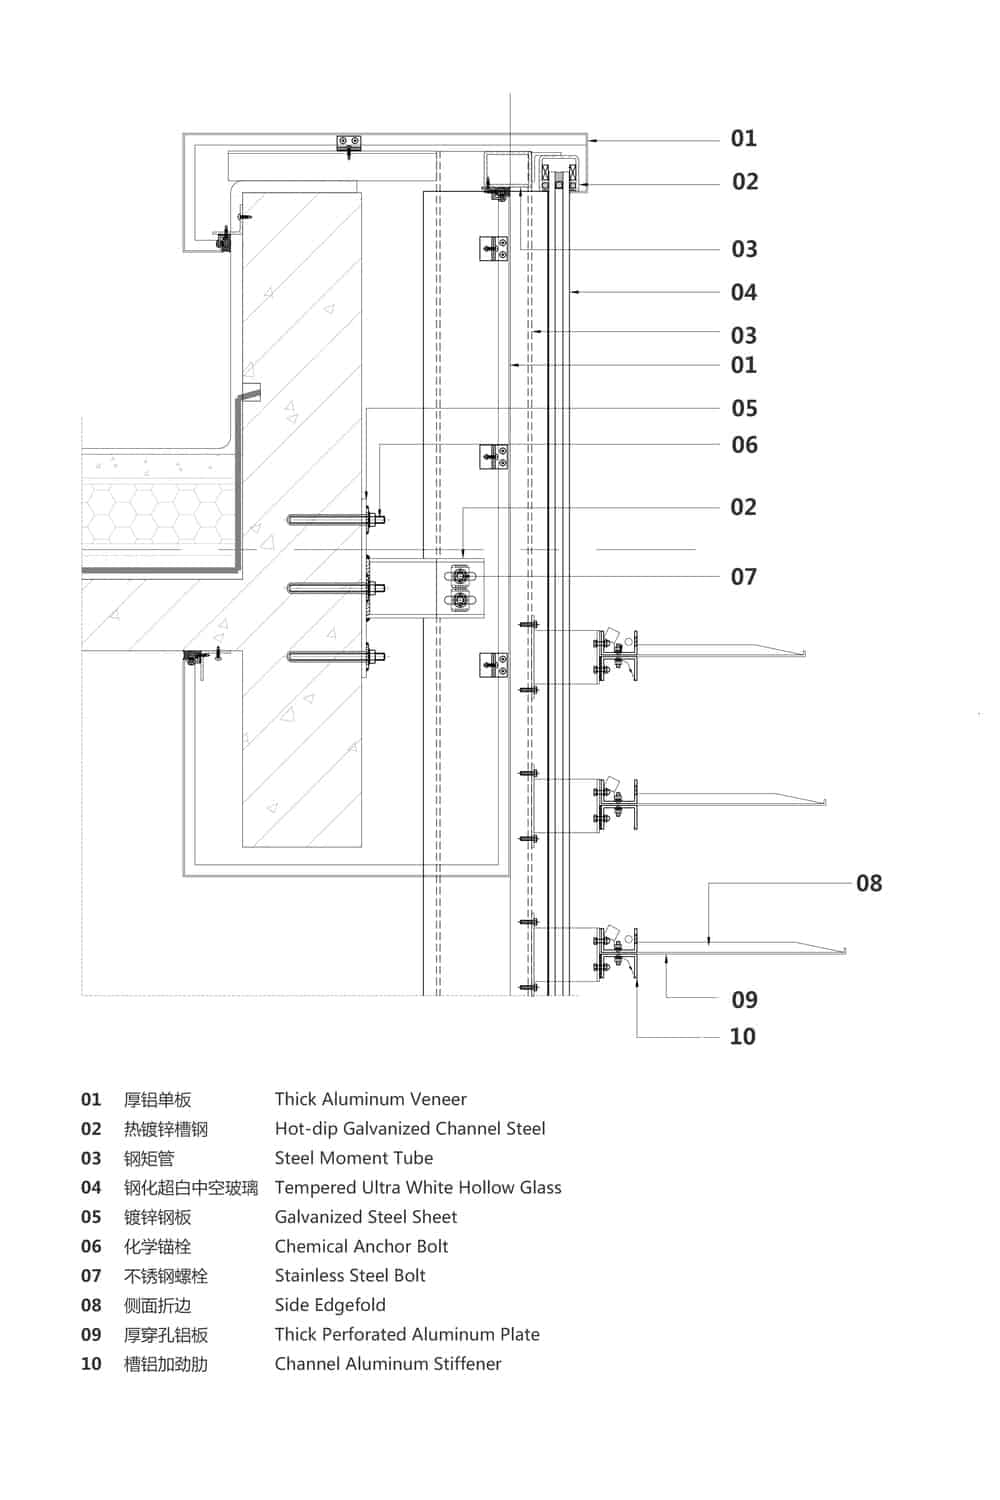 This is an illustration of the side elevation of the glass building depicting the various sections and parts.